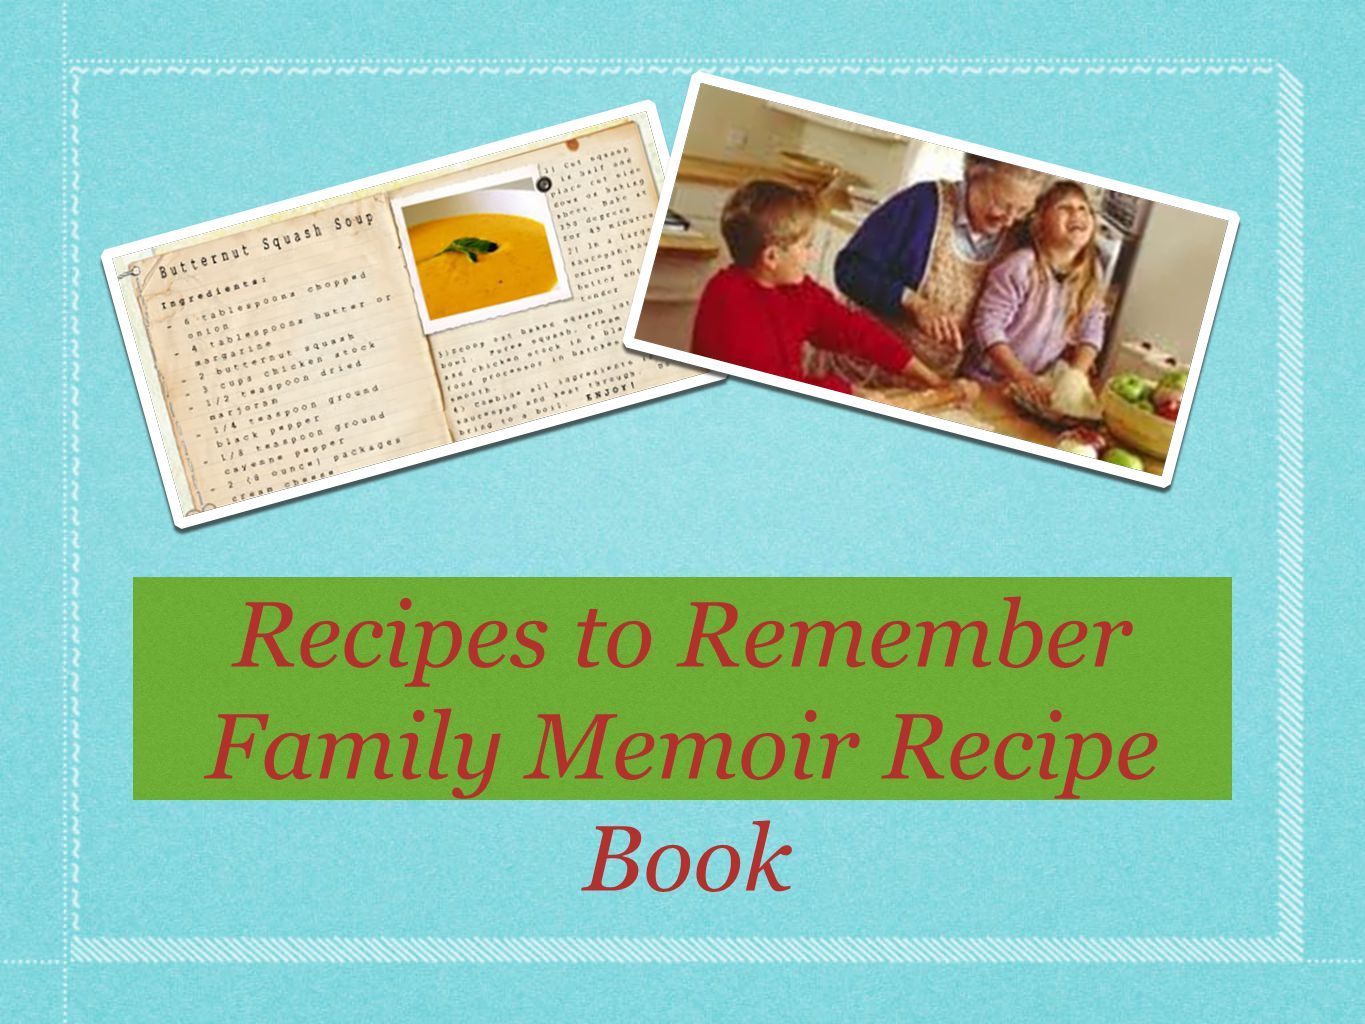 Recipes to Remember Family Memoir Recipe Book